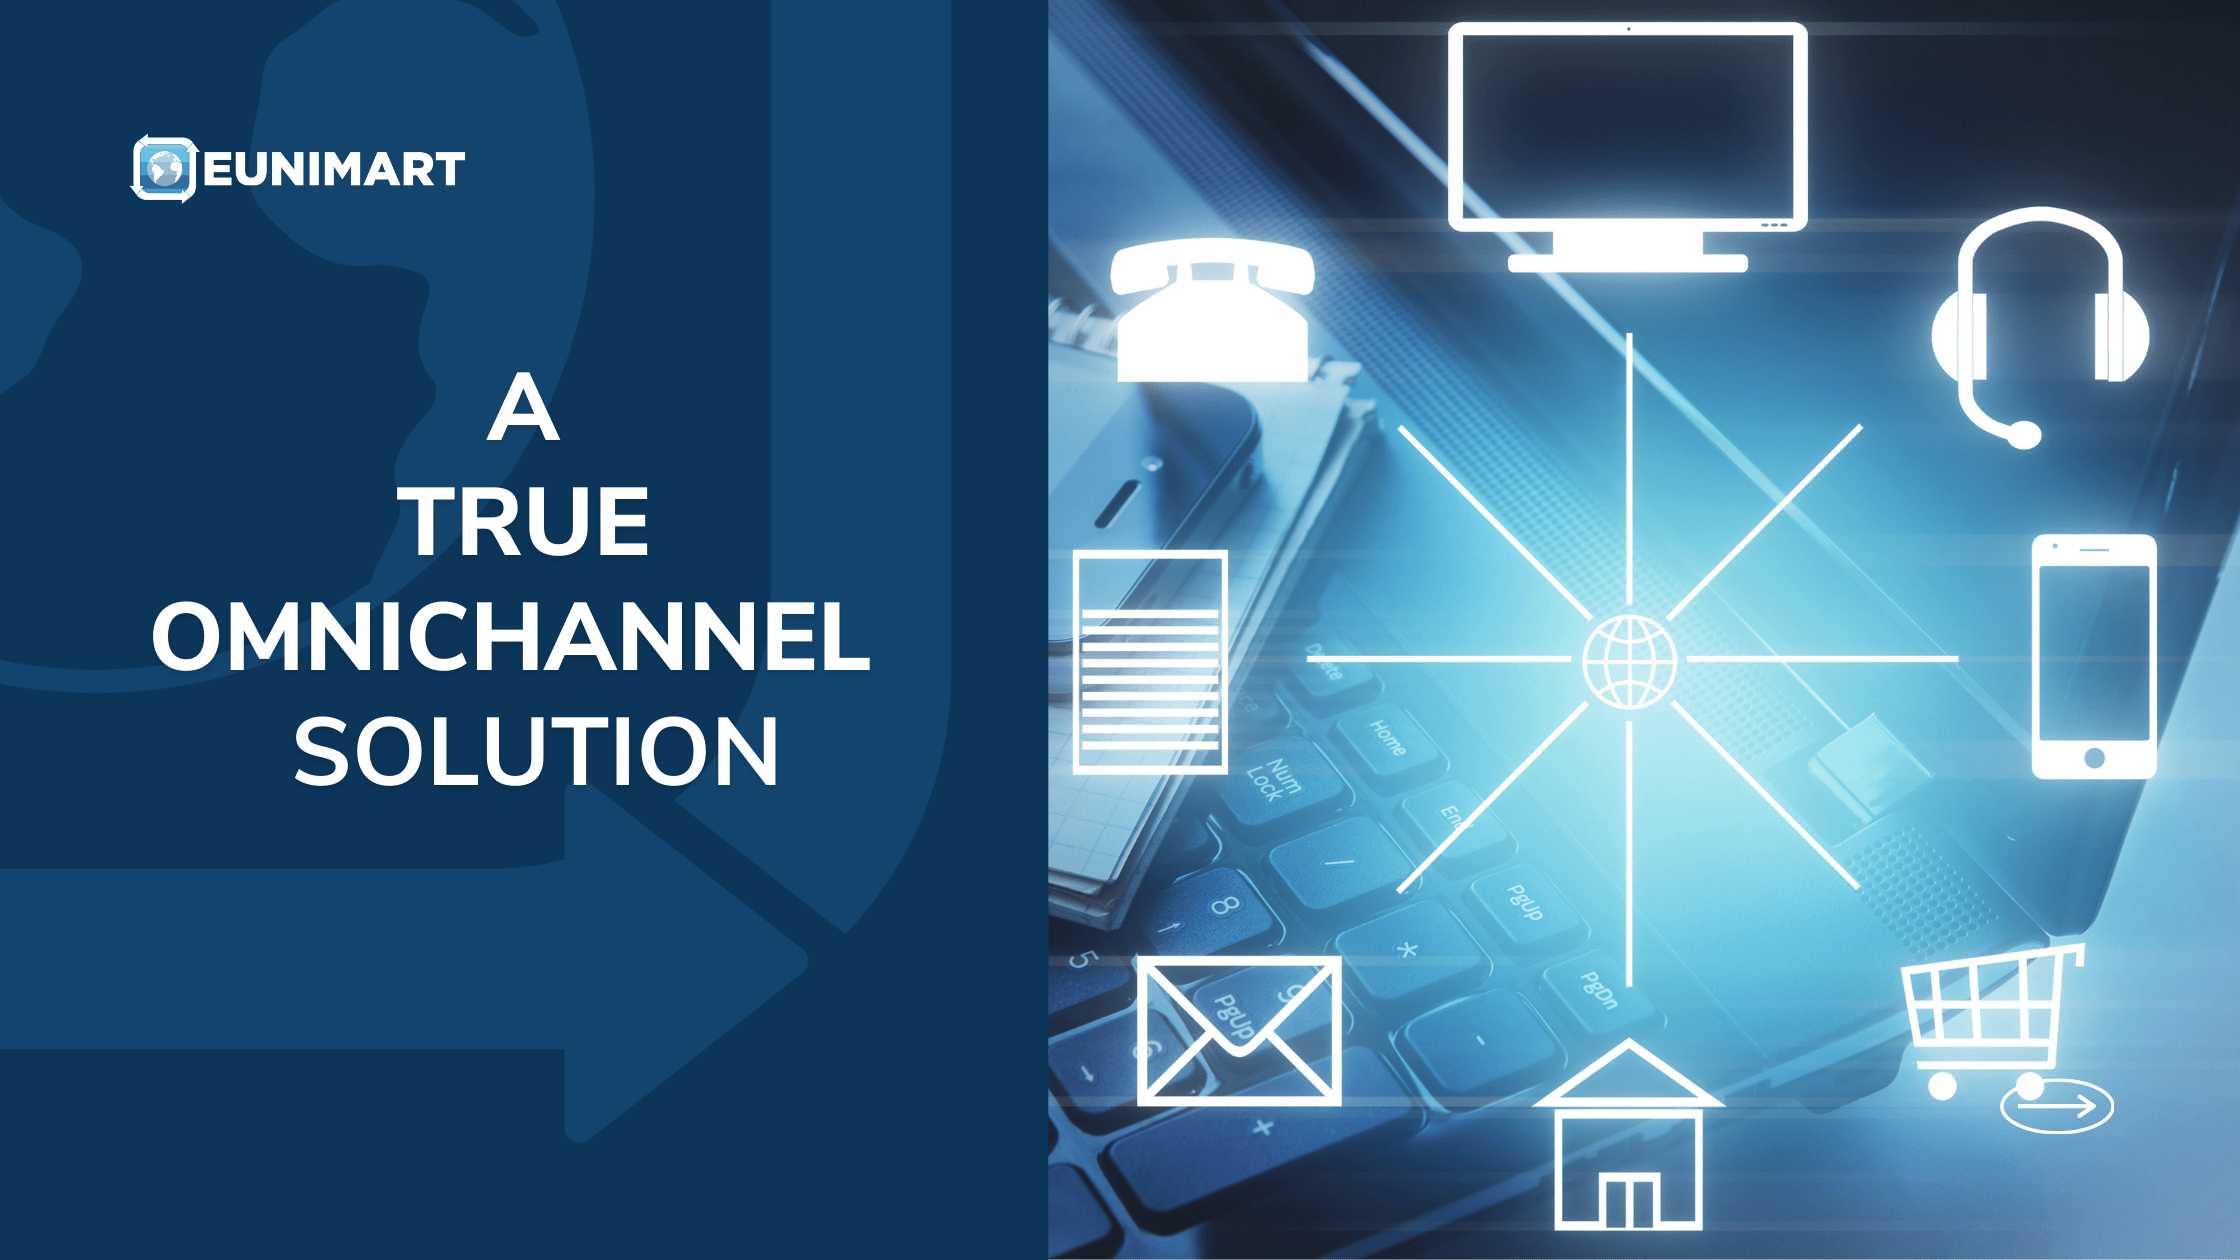 A True Omnichannel Solution